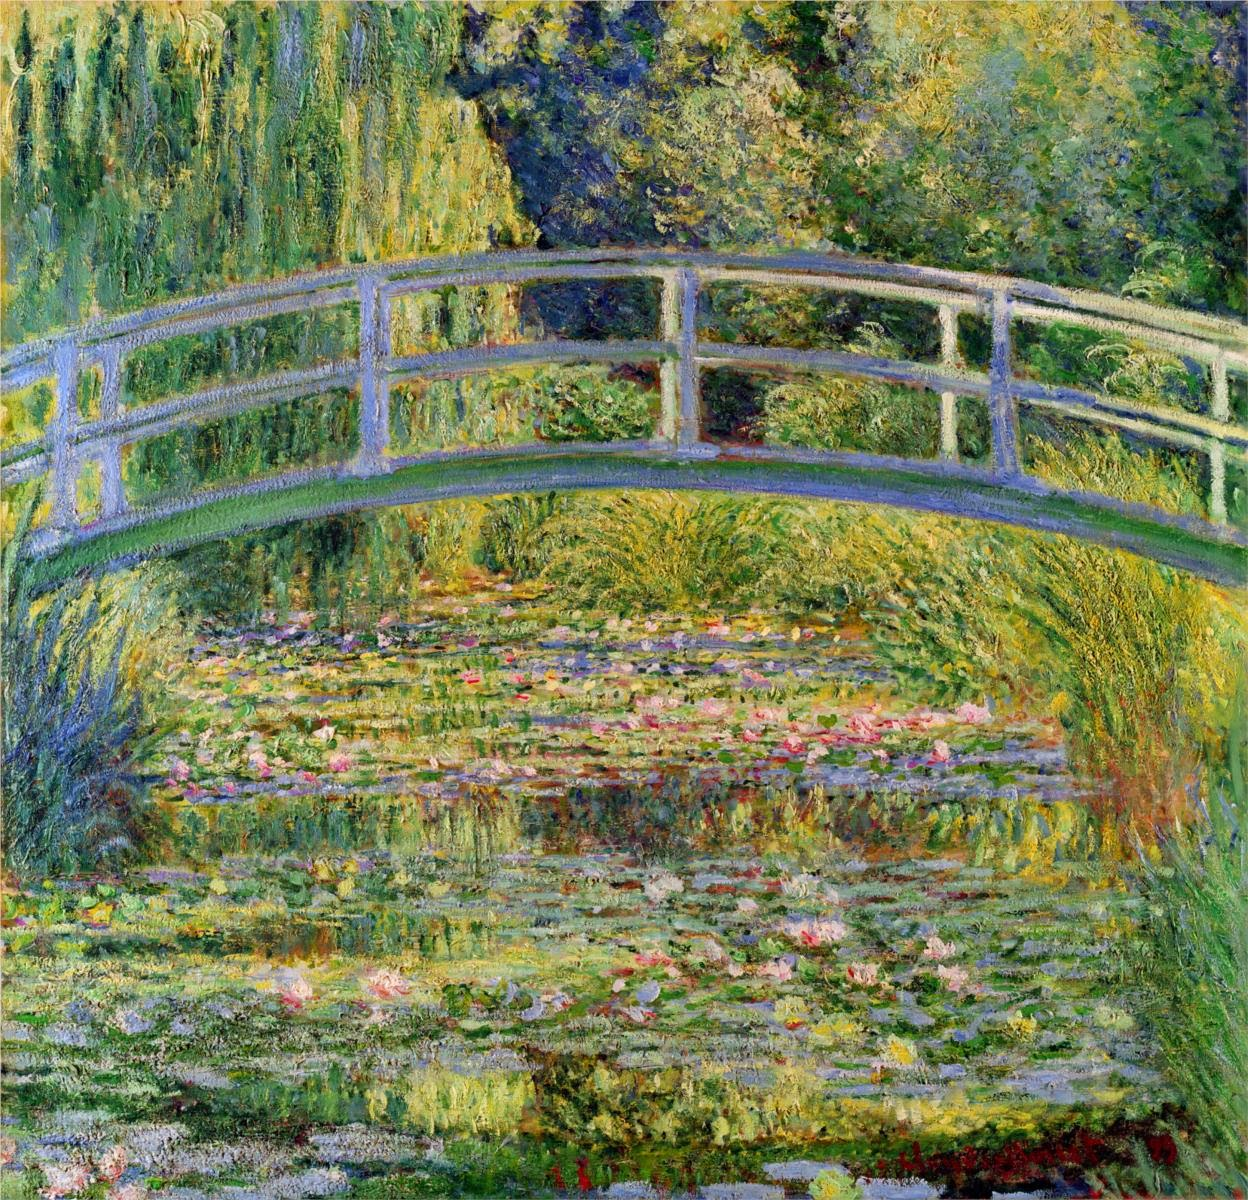 Claude Monet 1899 The Water Lily Pond Oil On Canvas 883 X 931 Cm National Gallery London